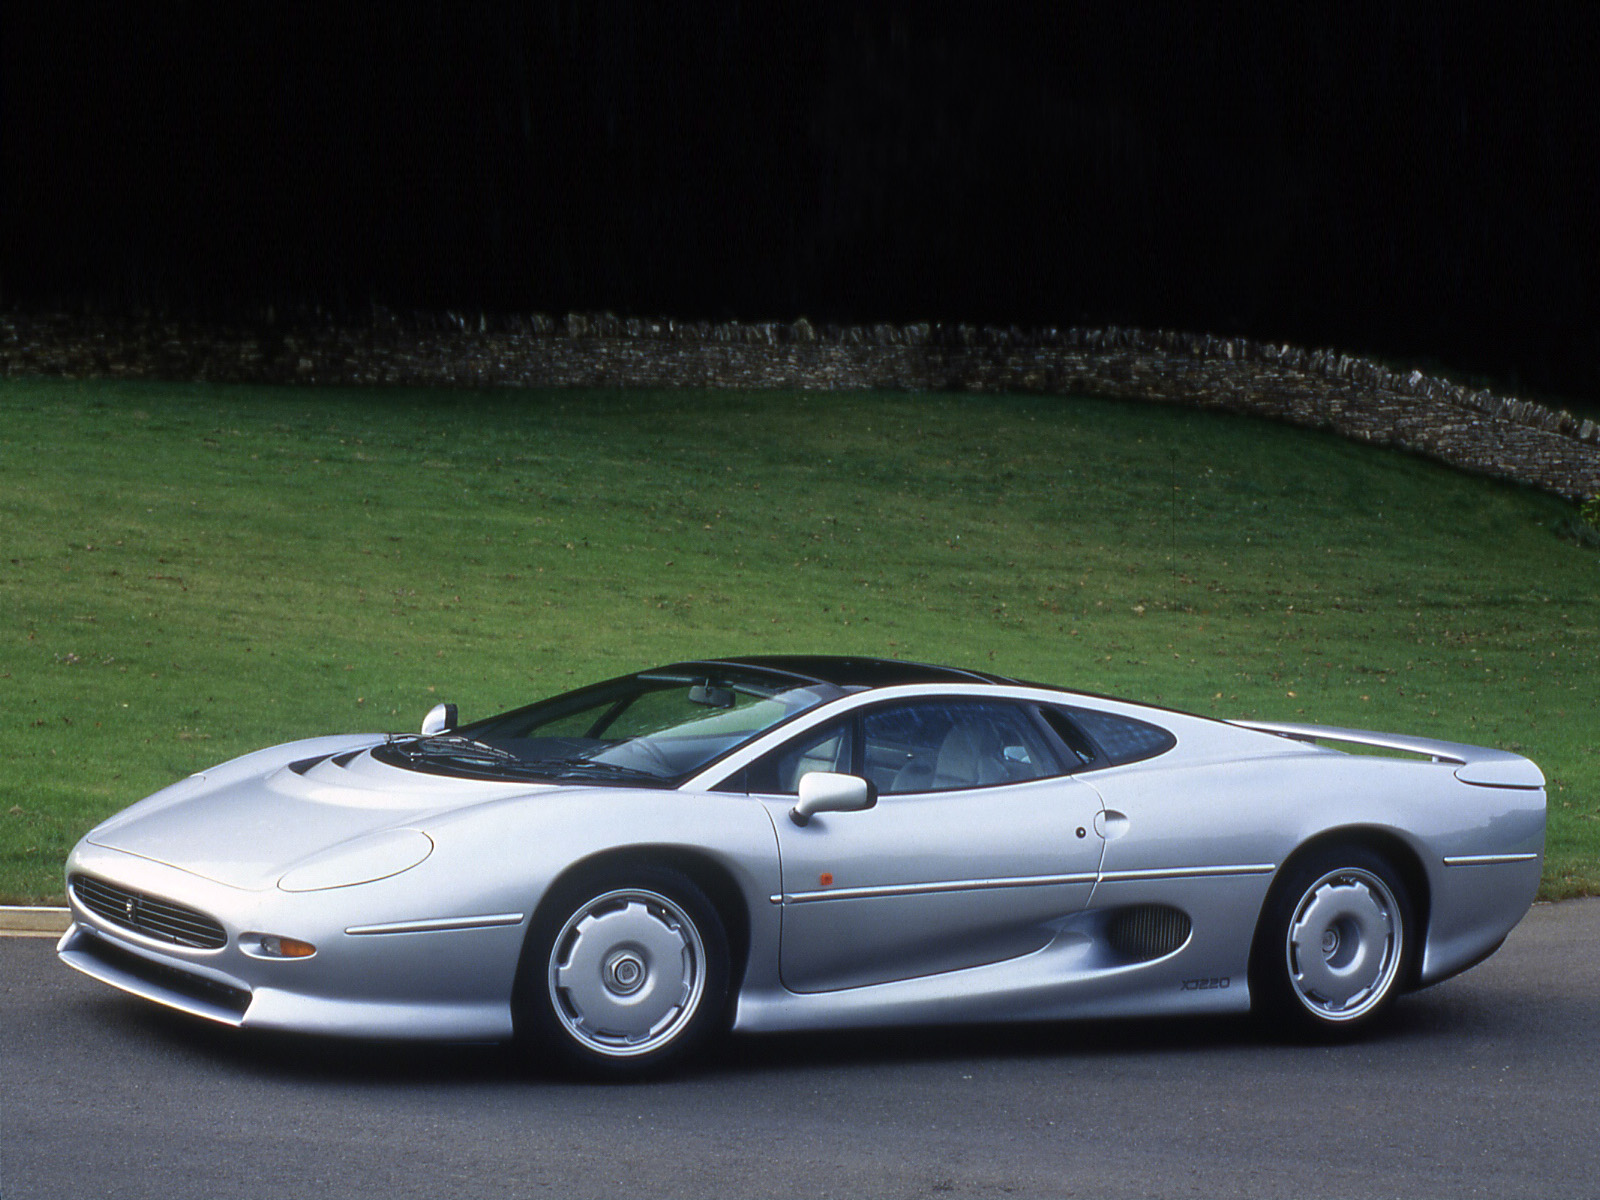 1992 Jaguar XJ220 UK Spec Supercar F Wallpaper 1600x1200